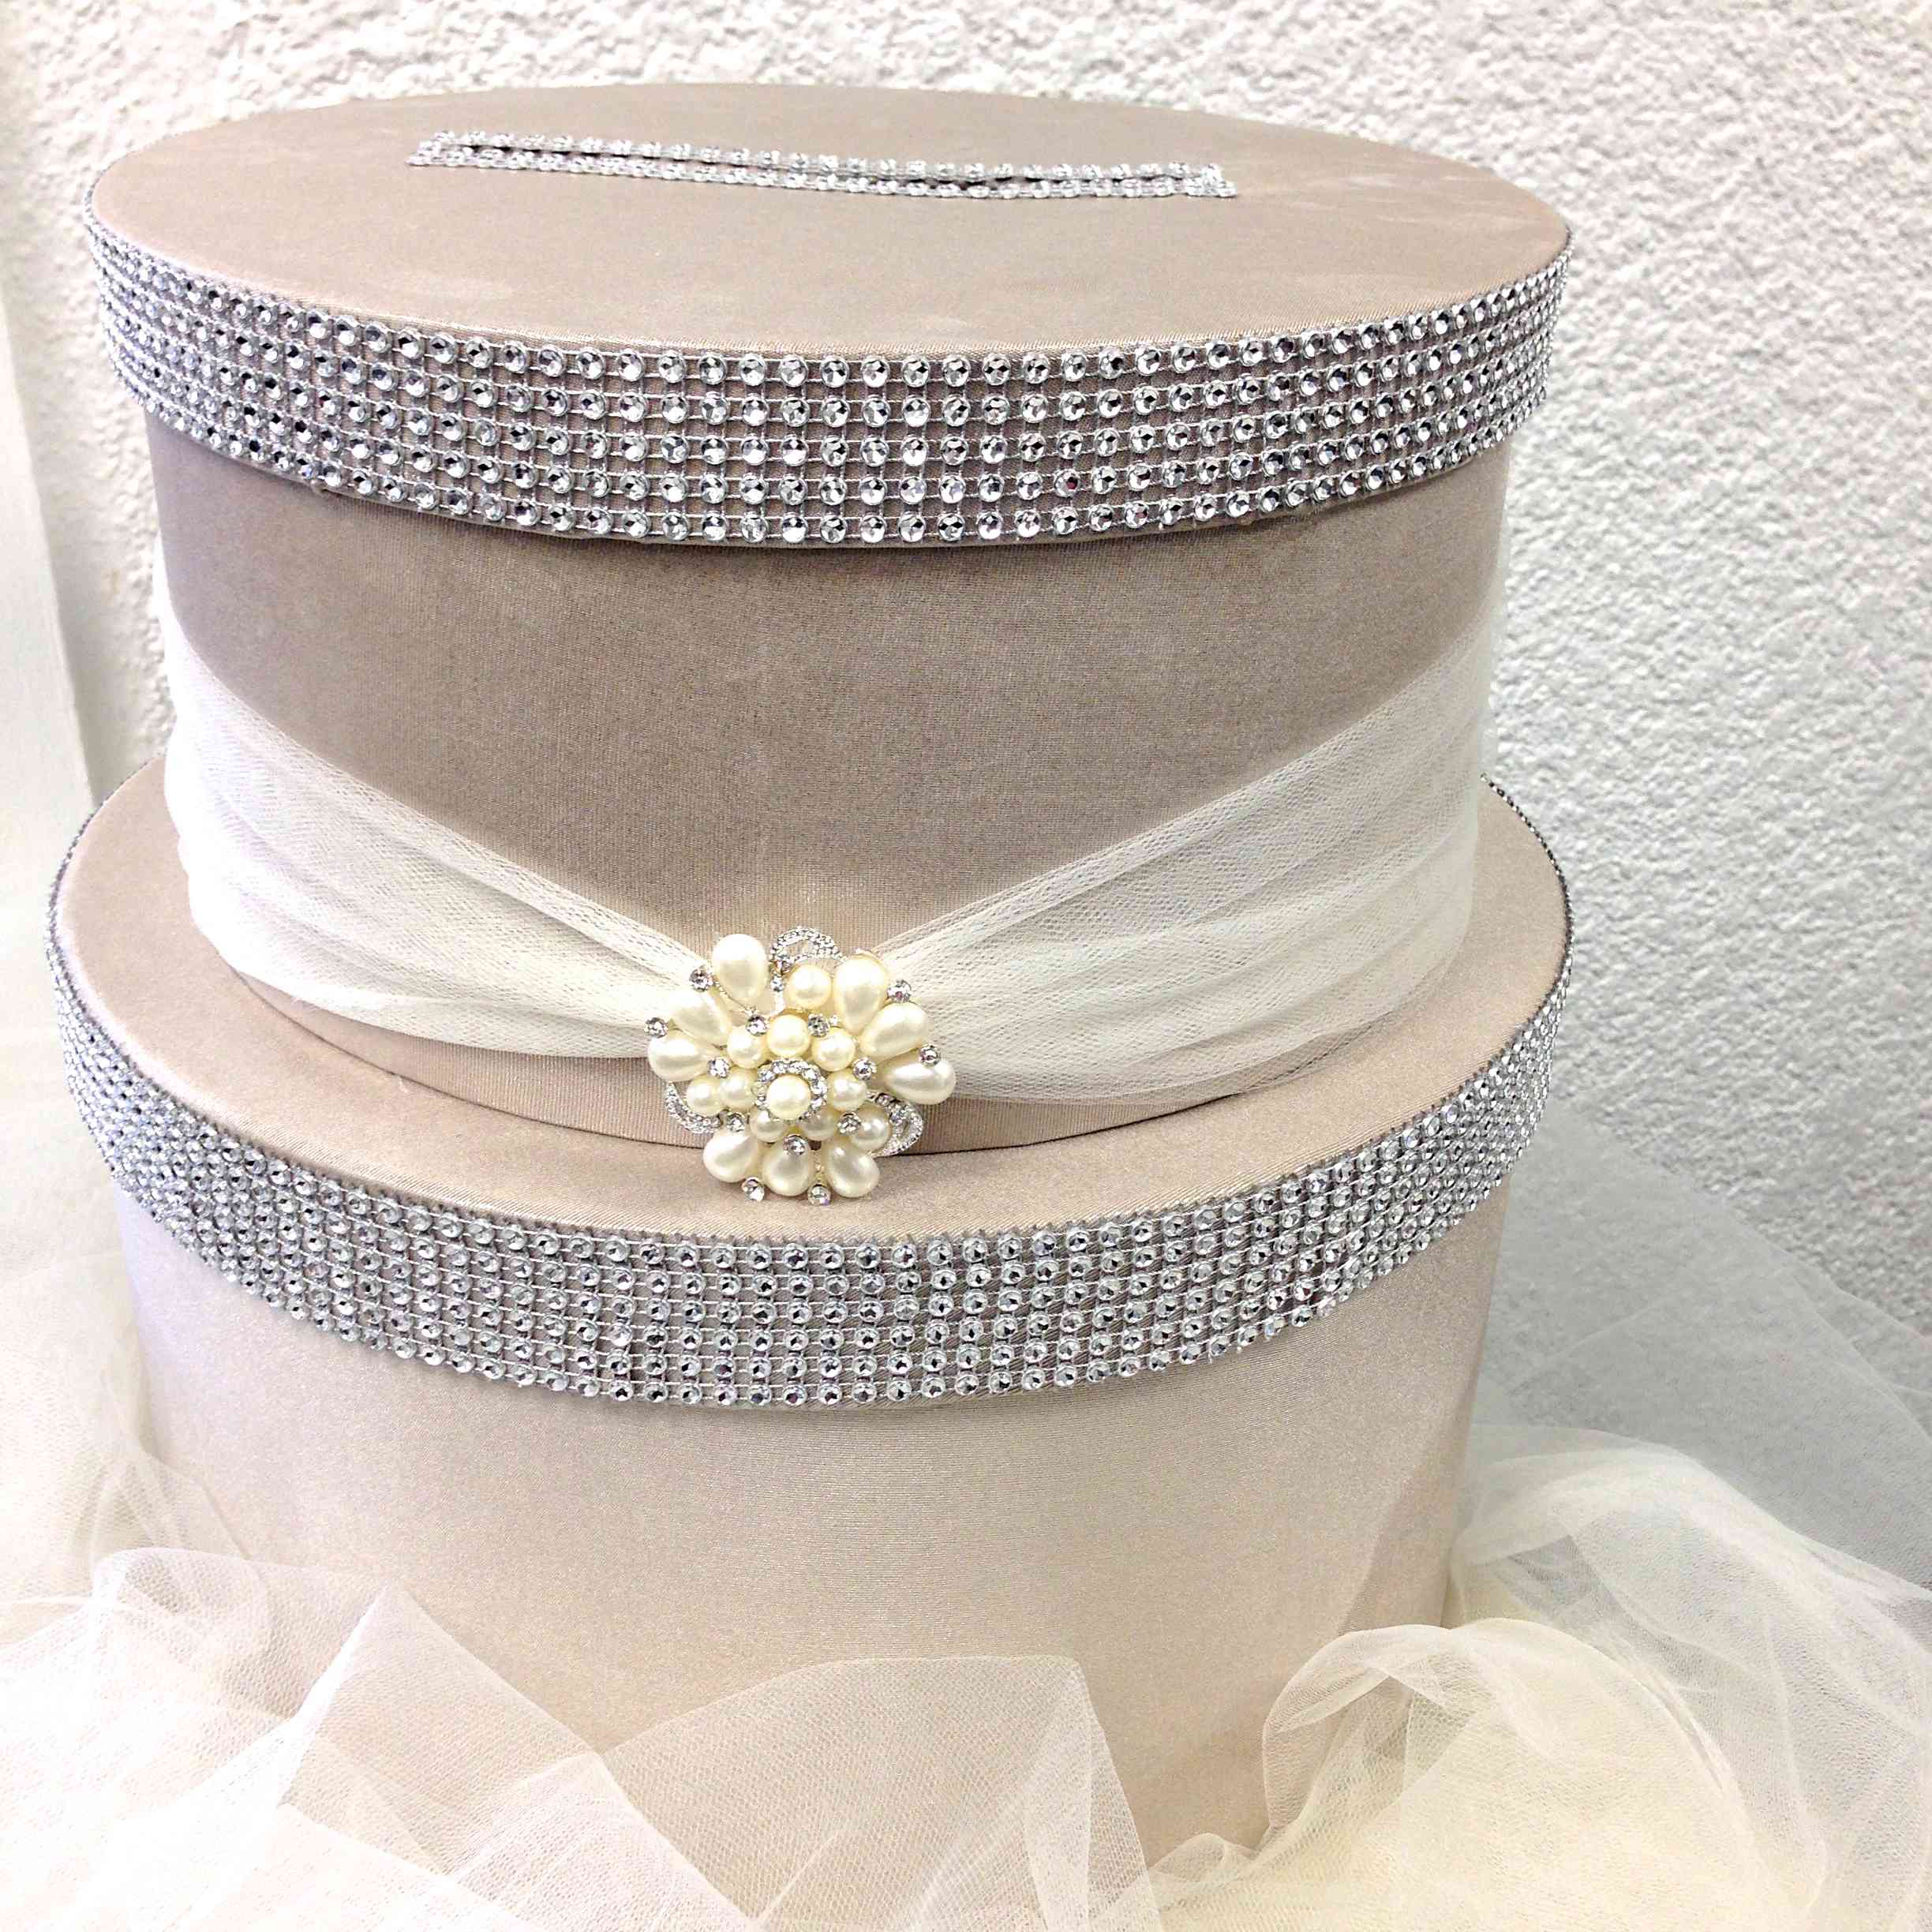 Tiered white wedding card box with embellishments.